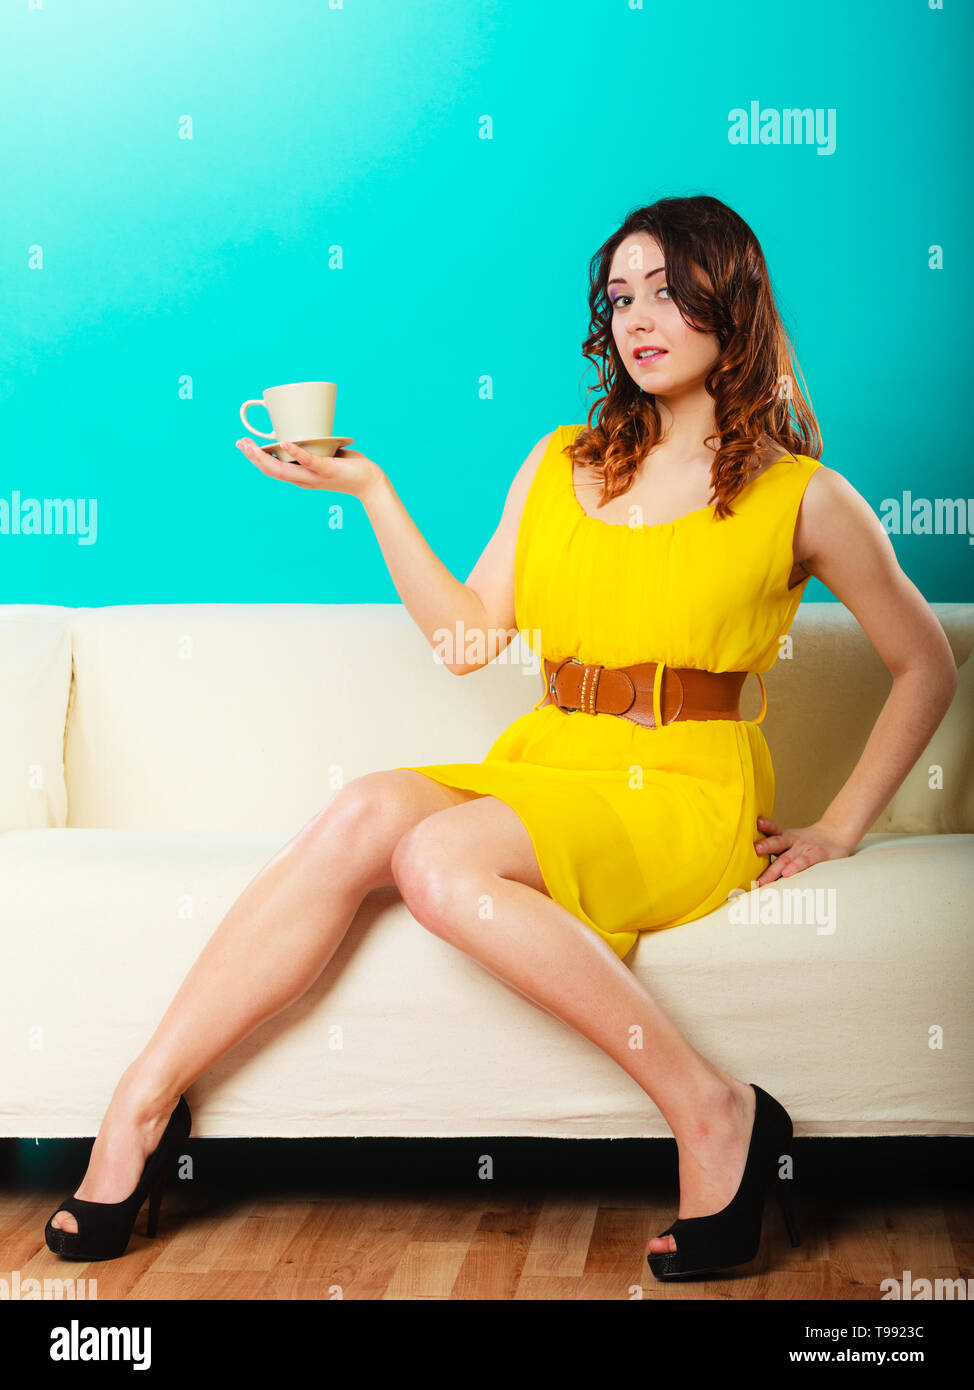 Beauty fashion and relax concept. Fashionable girl yellow dress holding hot drink coffee or tea cup, sitting on sofa - Stock Image